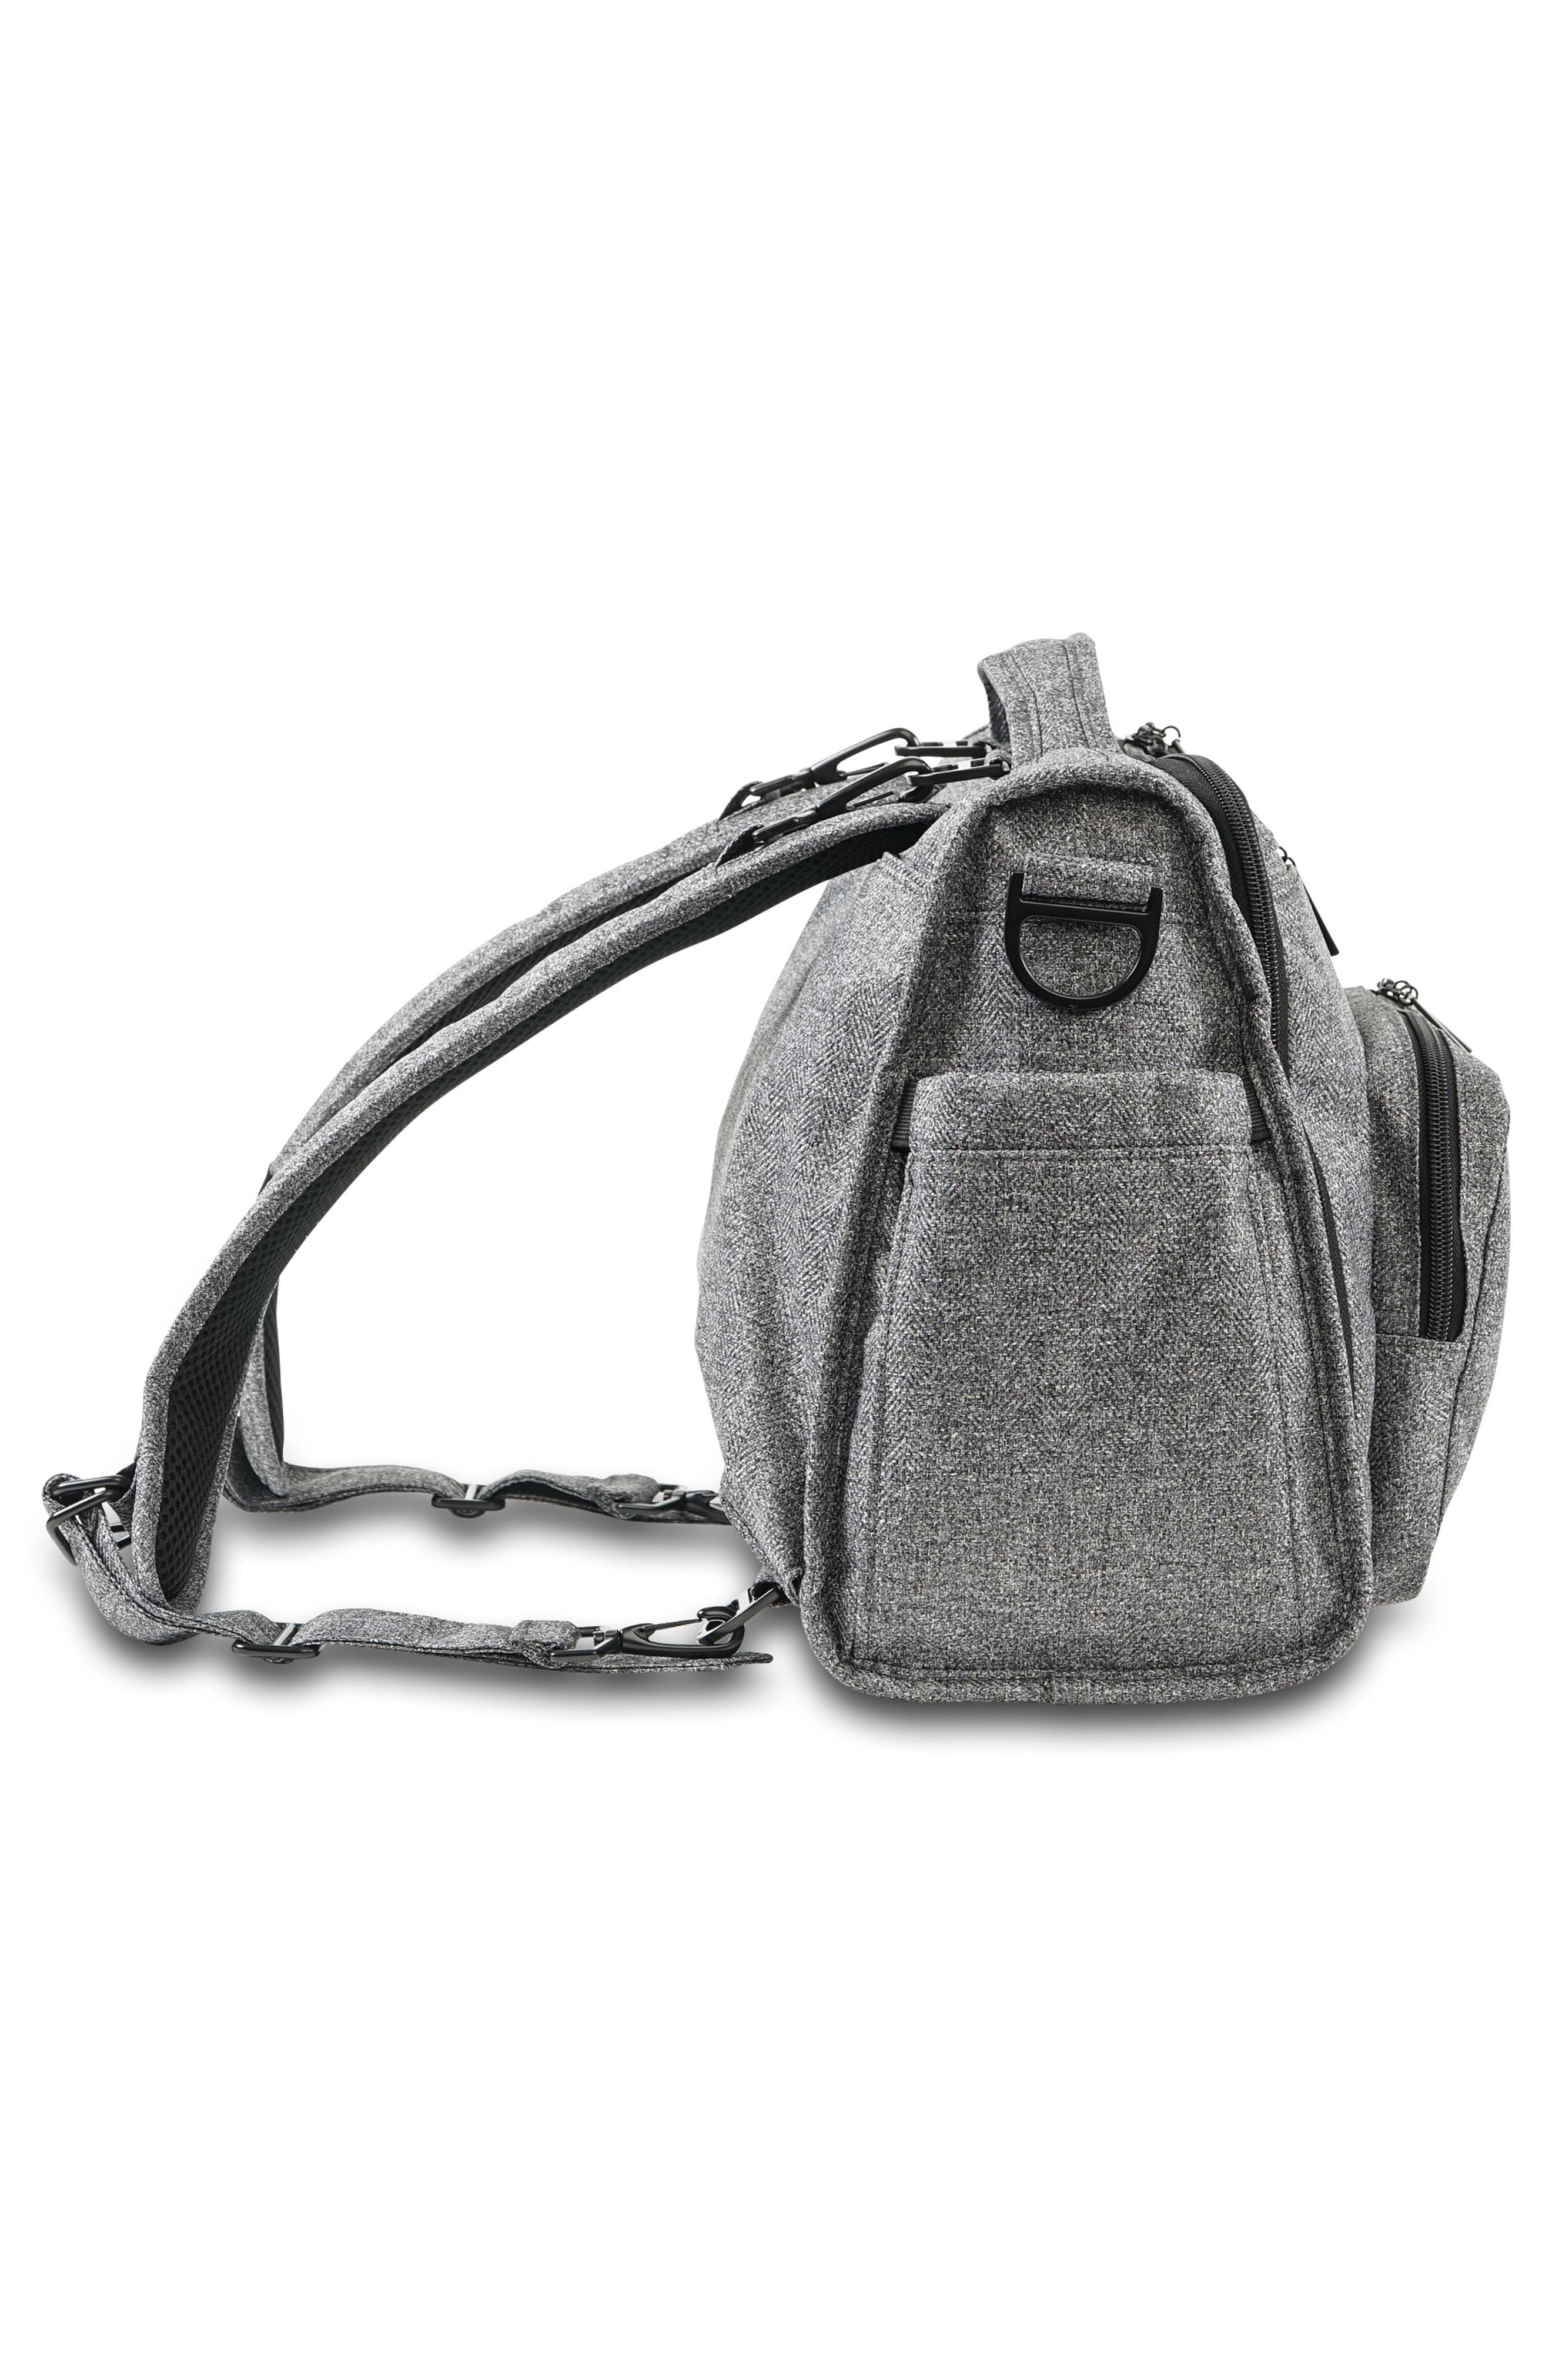 'BFF - Onyx Collection' Diaper Bag,                             Alternate thumbnail 5, color,                             GRAY MATTER